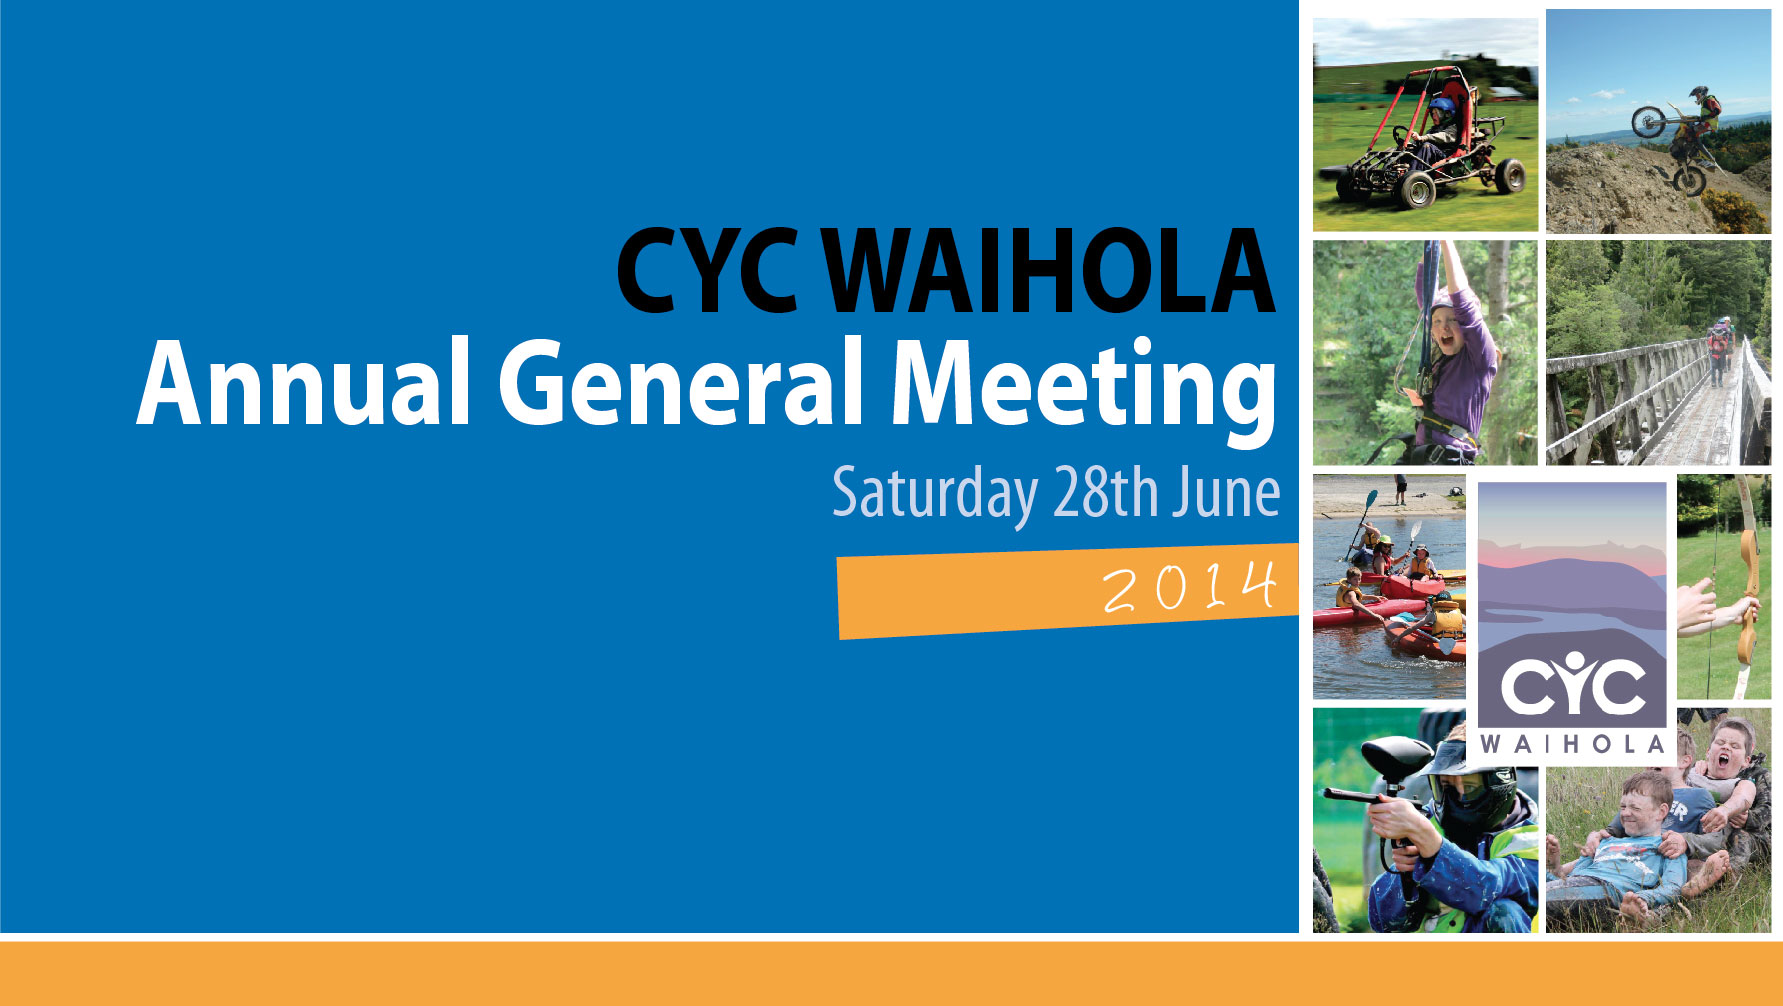 2014 Annual General Meeting